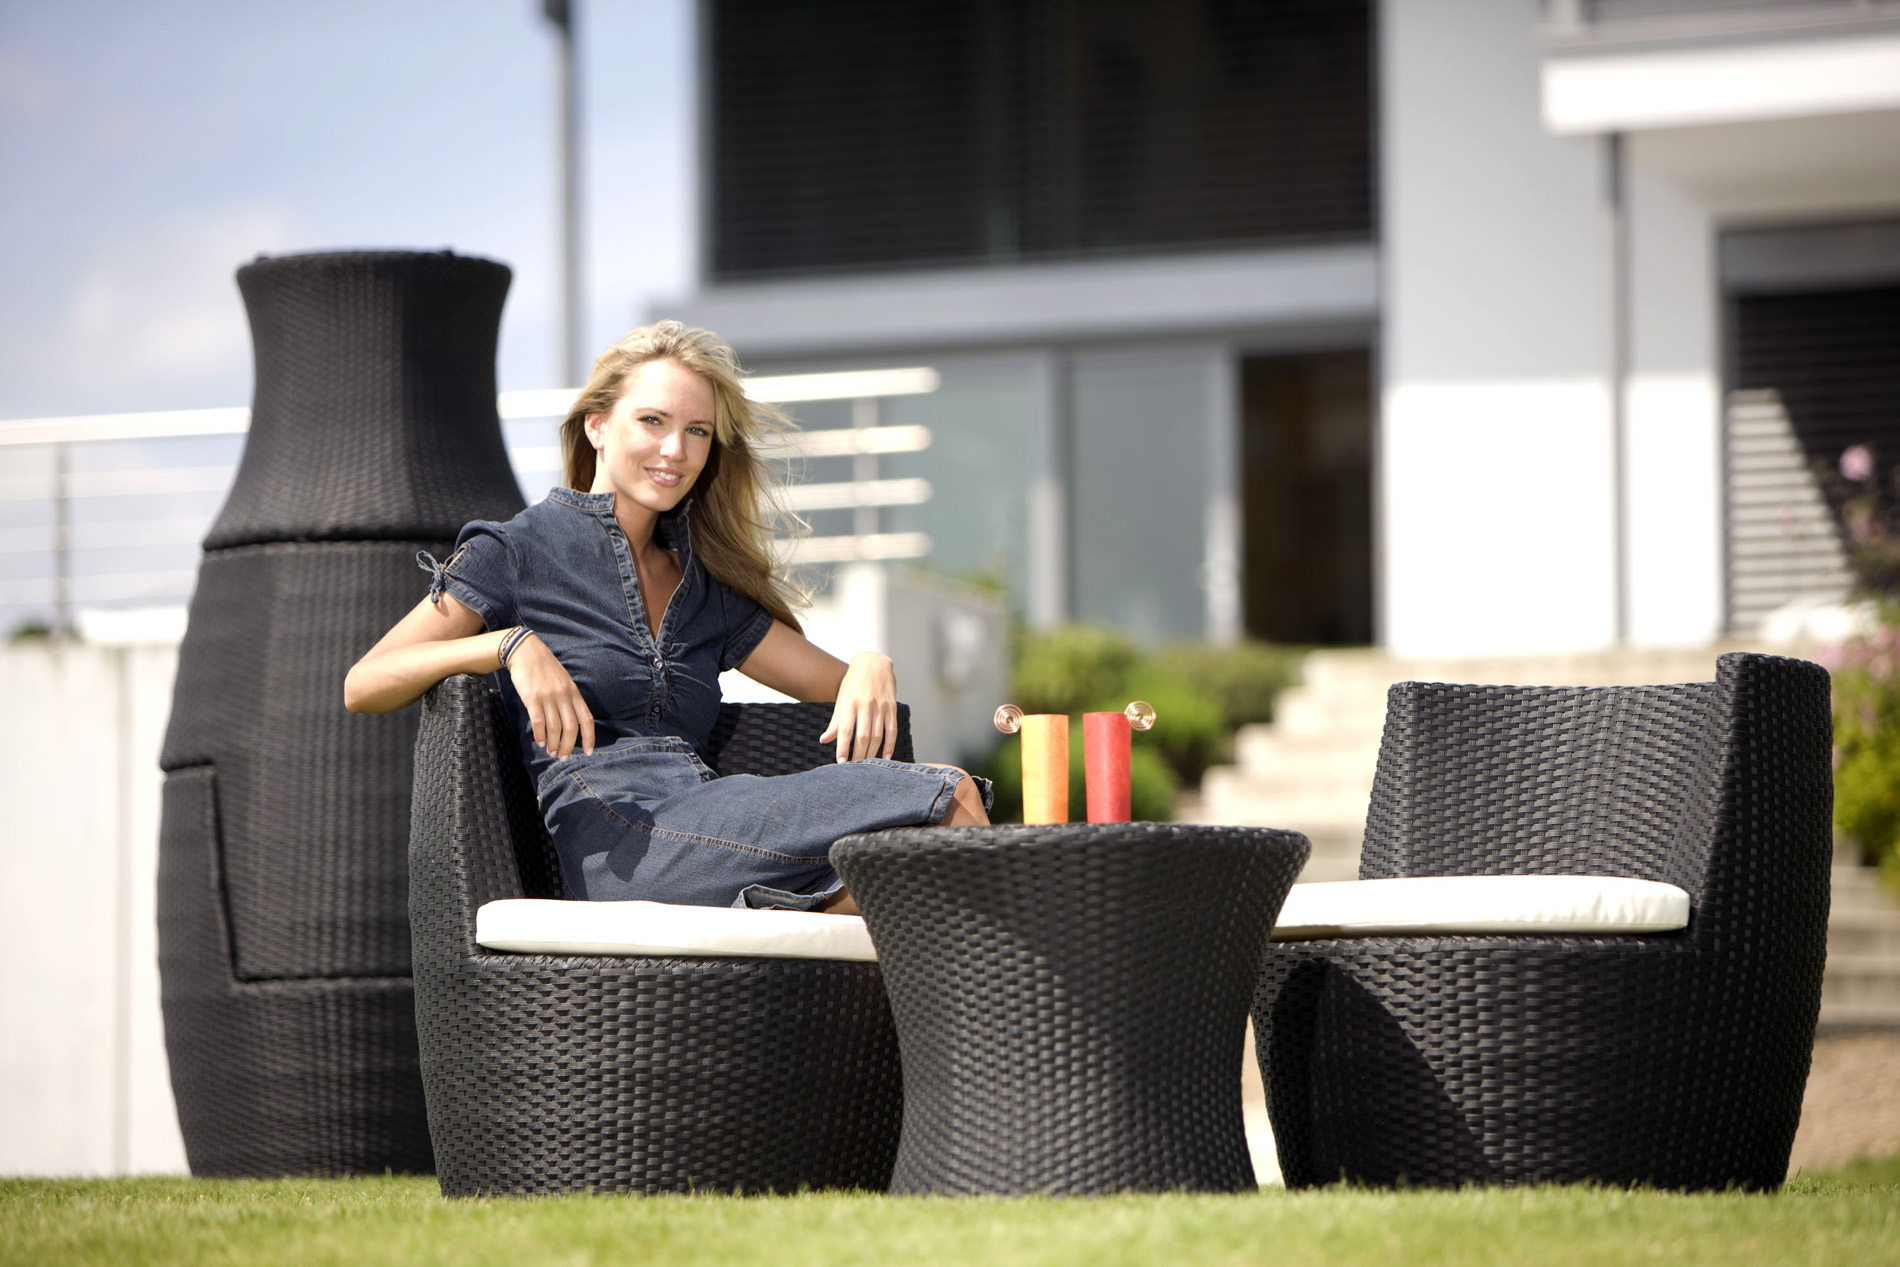 gartenm bel kaufen im online shop. Black Bedroom Furniture Sets. Home Design Ideas